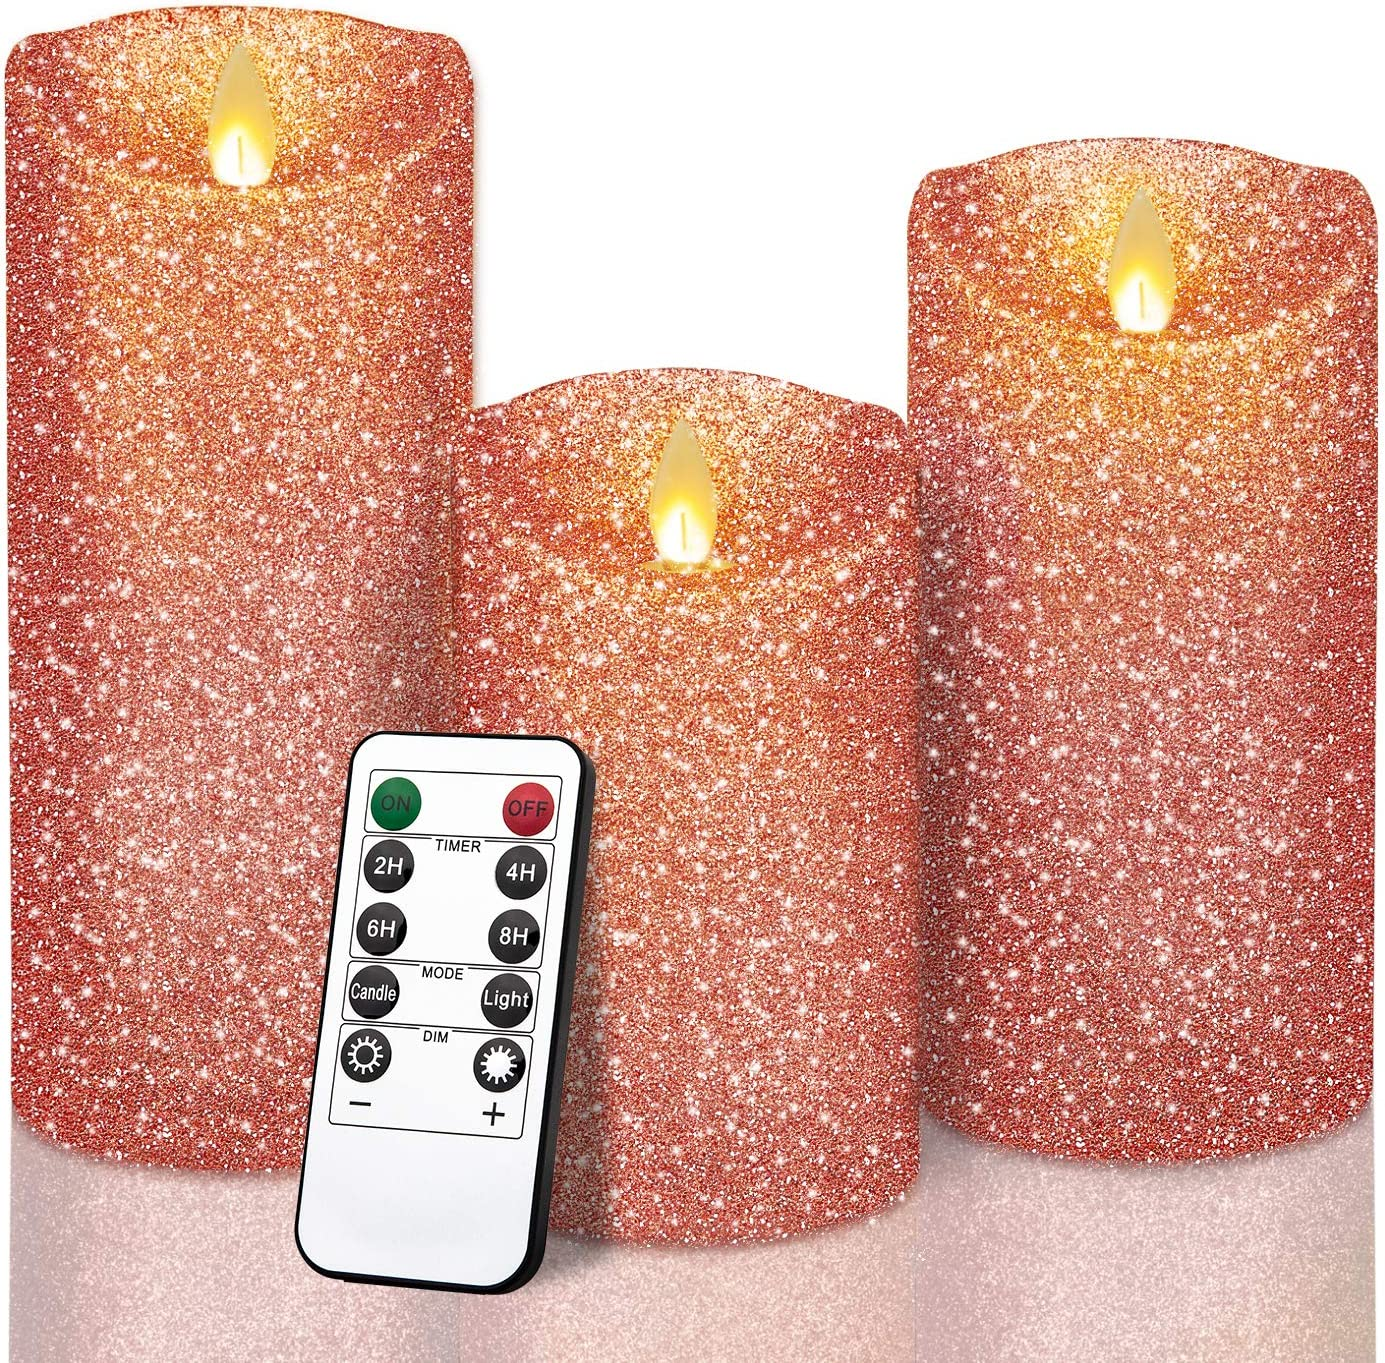 "YINUO LIGHT Rose Gold Glitter Candles, Real Wax Flameless LED Pillar Candles Battery Operated 4"" 5"" 6 "" Set of 3 with Remote and Timer"